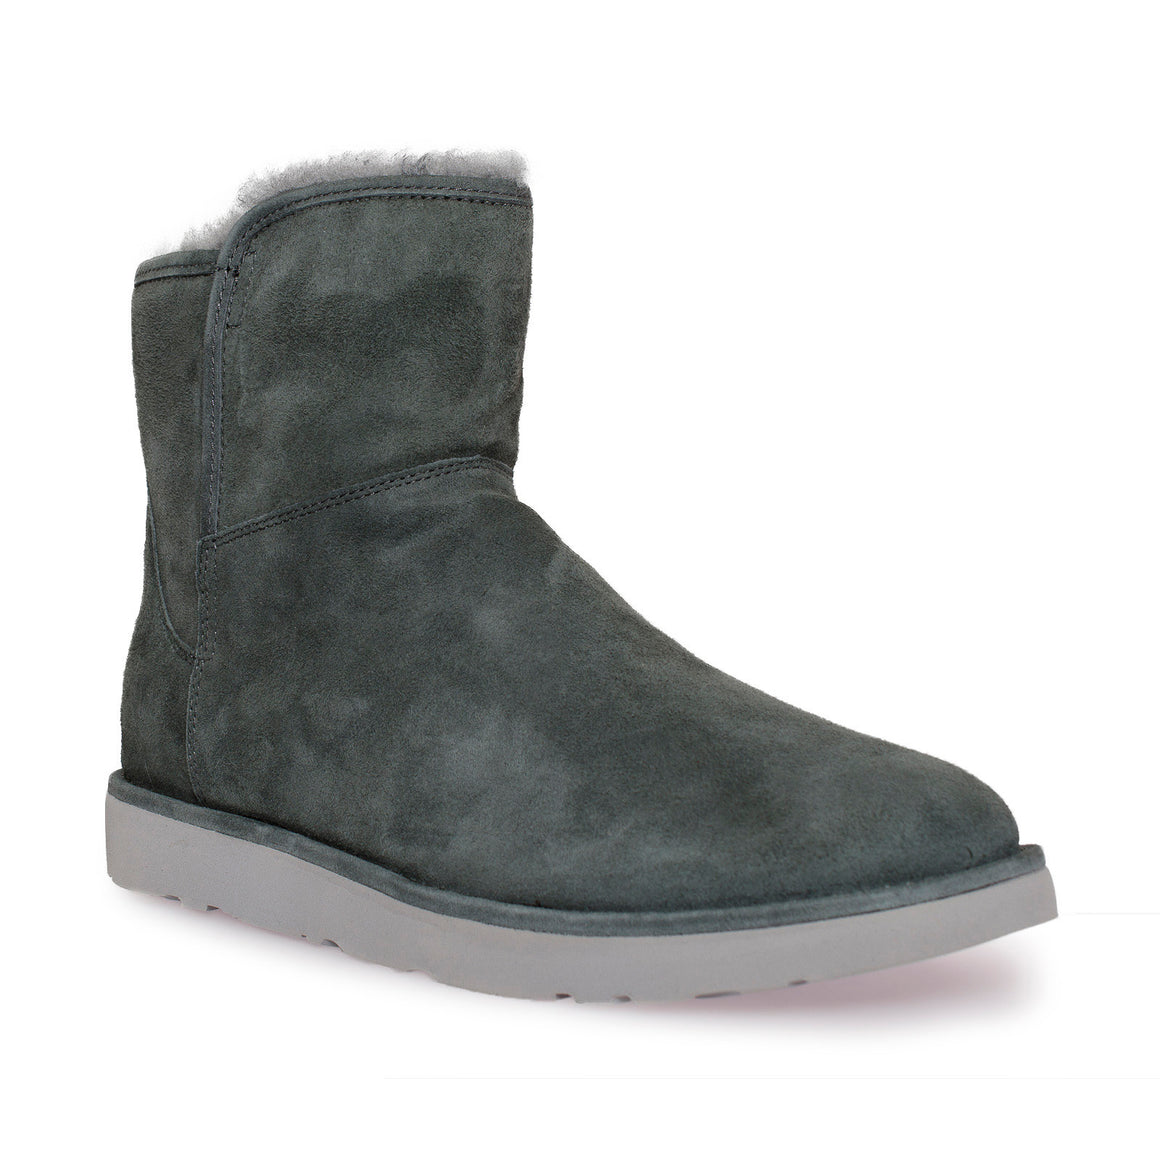 UGG Abree Mini Grigio Boots - Women's